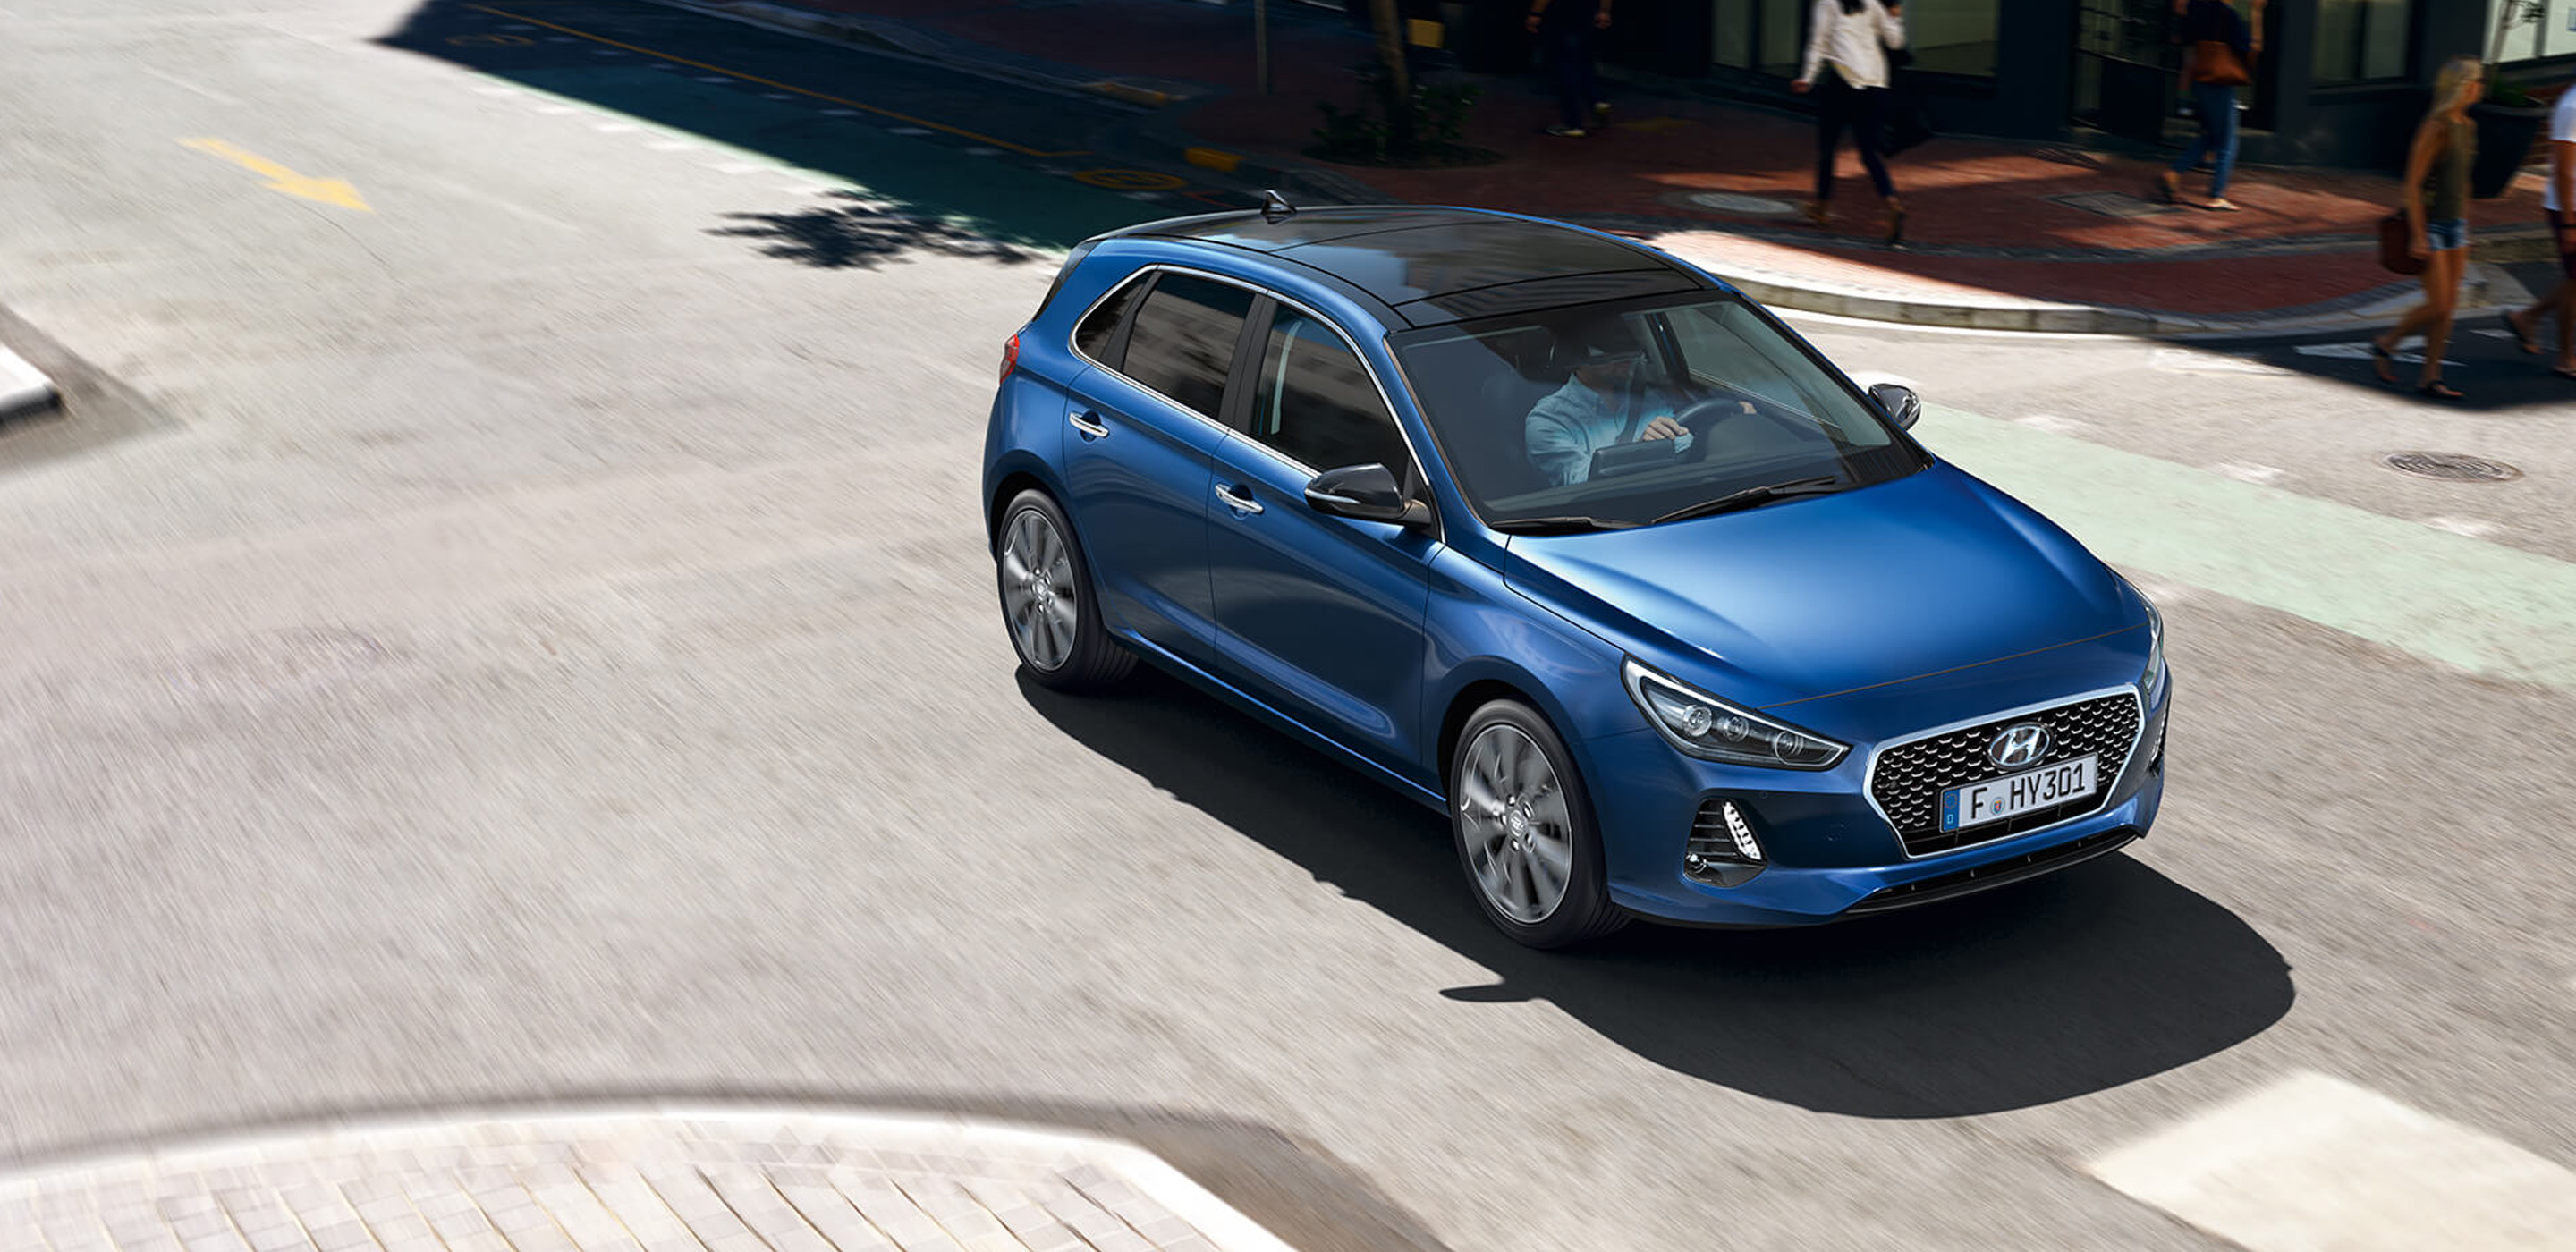 Up to �5,000 off with Hyundai�s new scrappage scheme